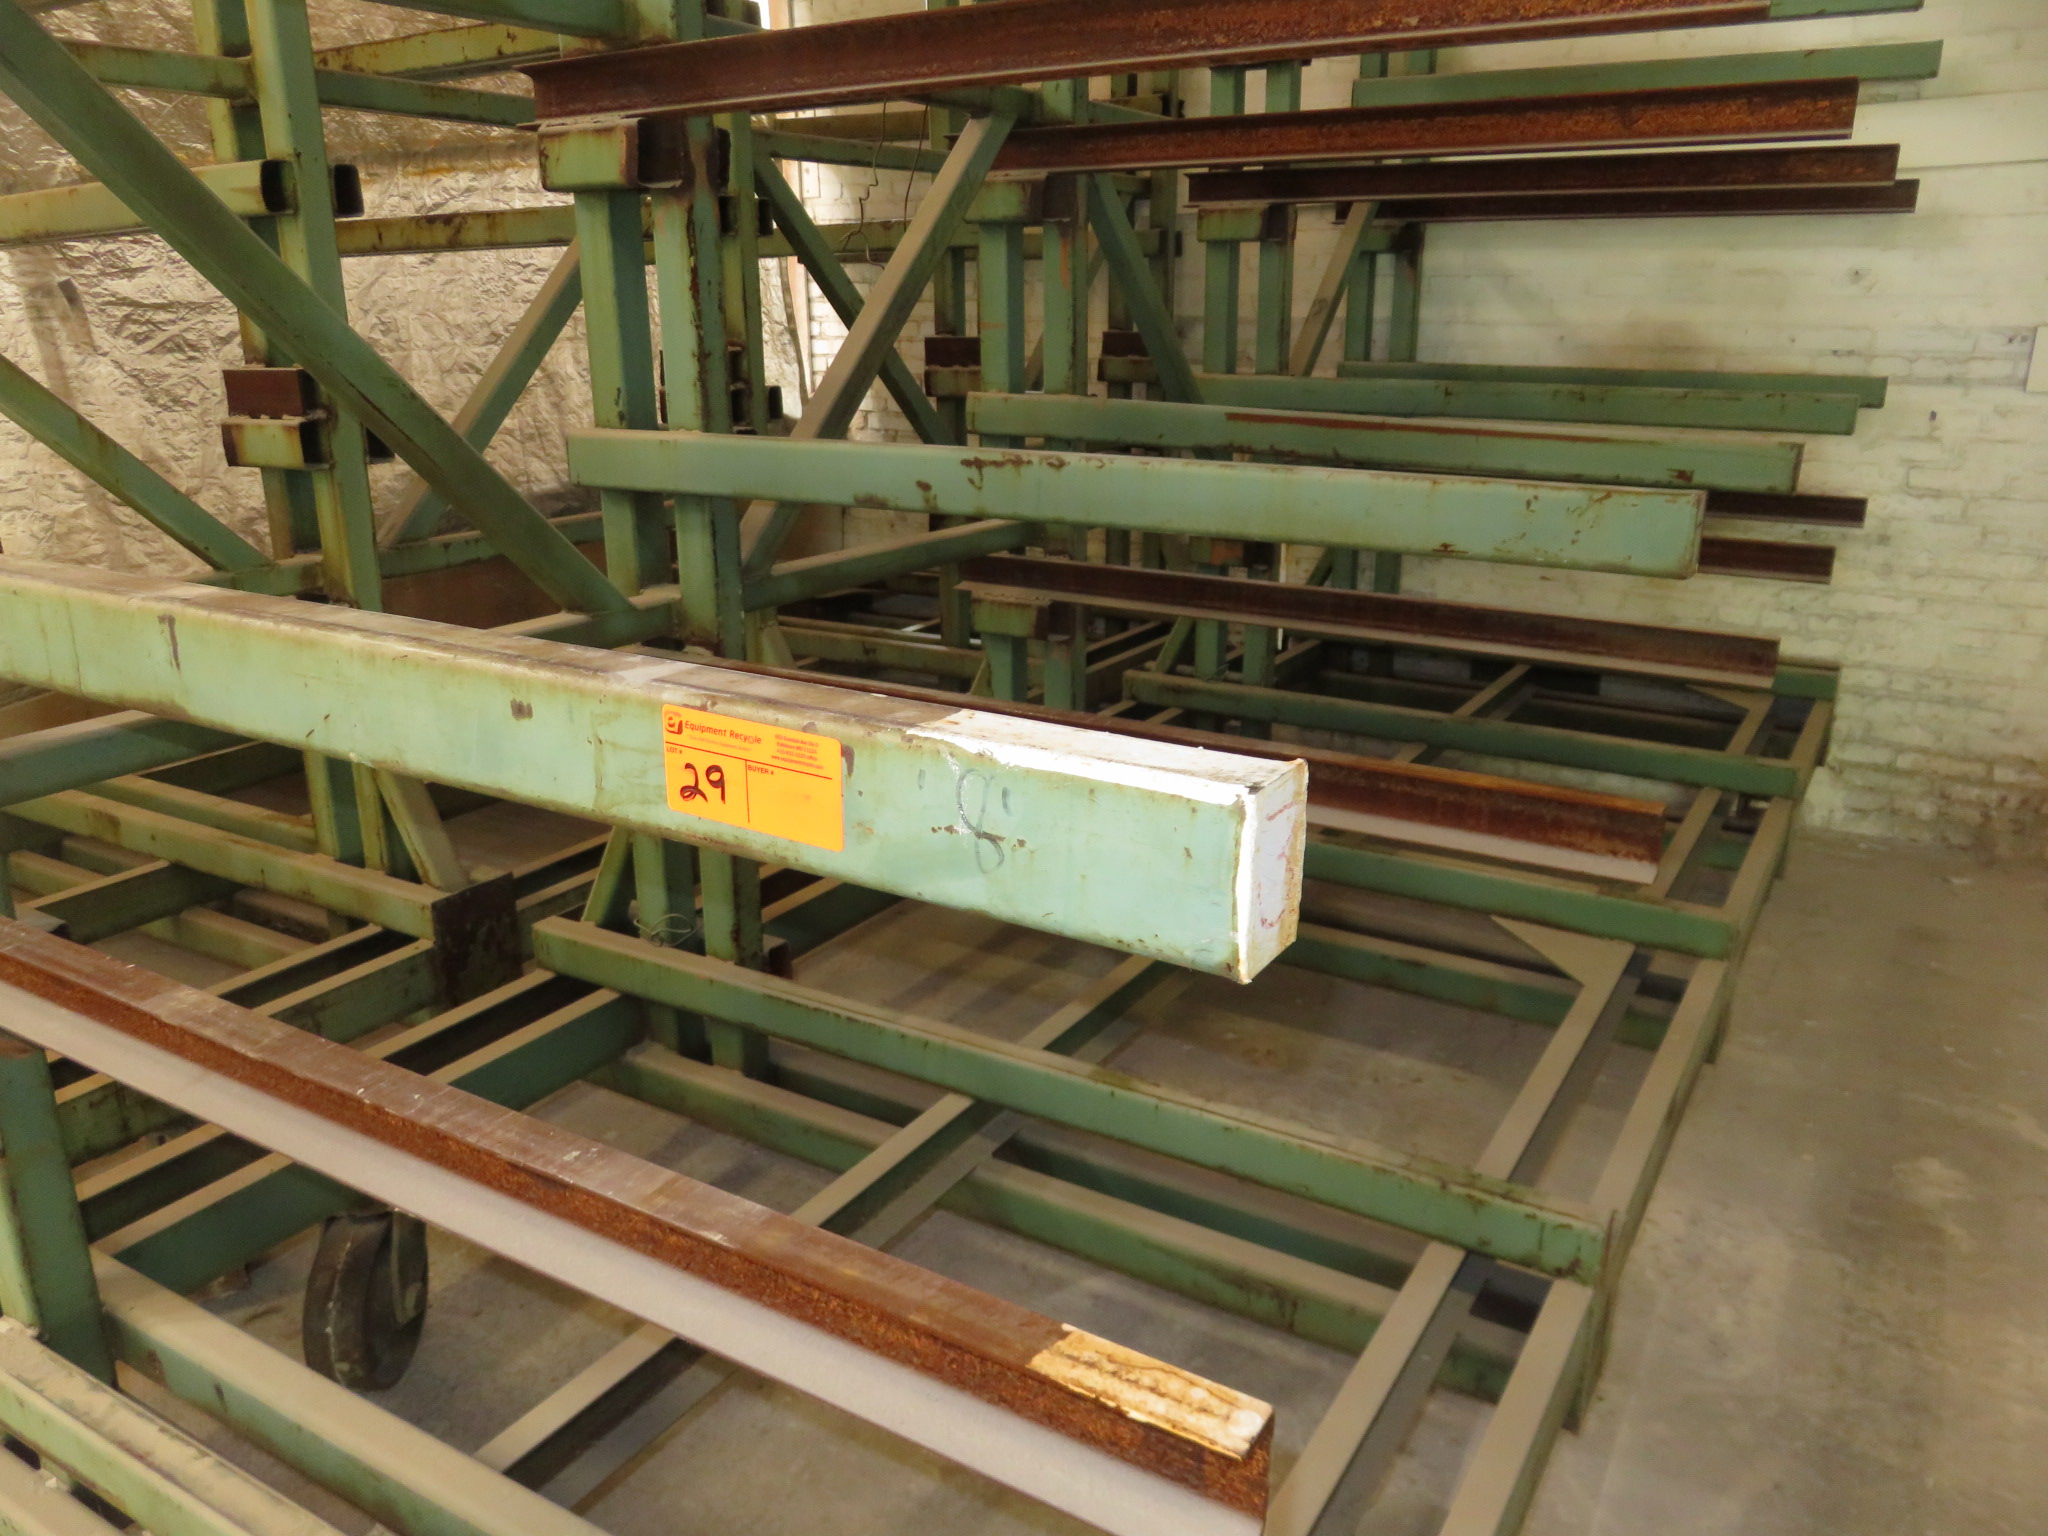 "Heavy Duty Cantilever Warehouse Racking Approx. 162"" x 63"" x 91"" - Image 2 of 2"